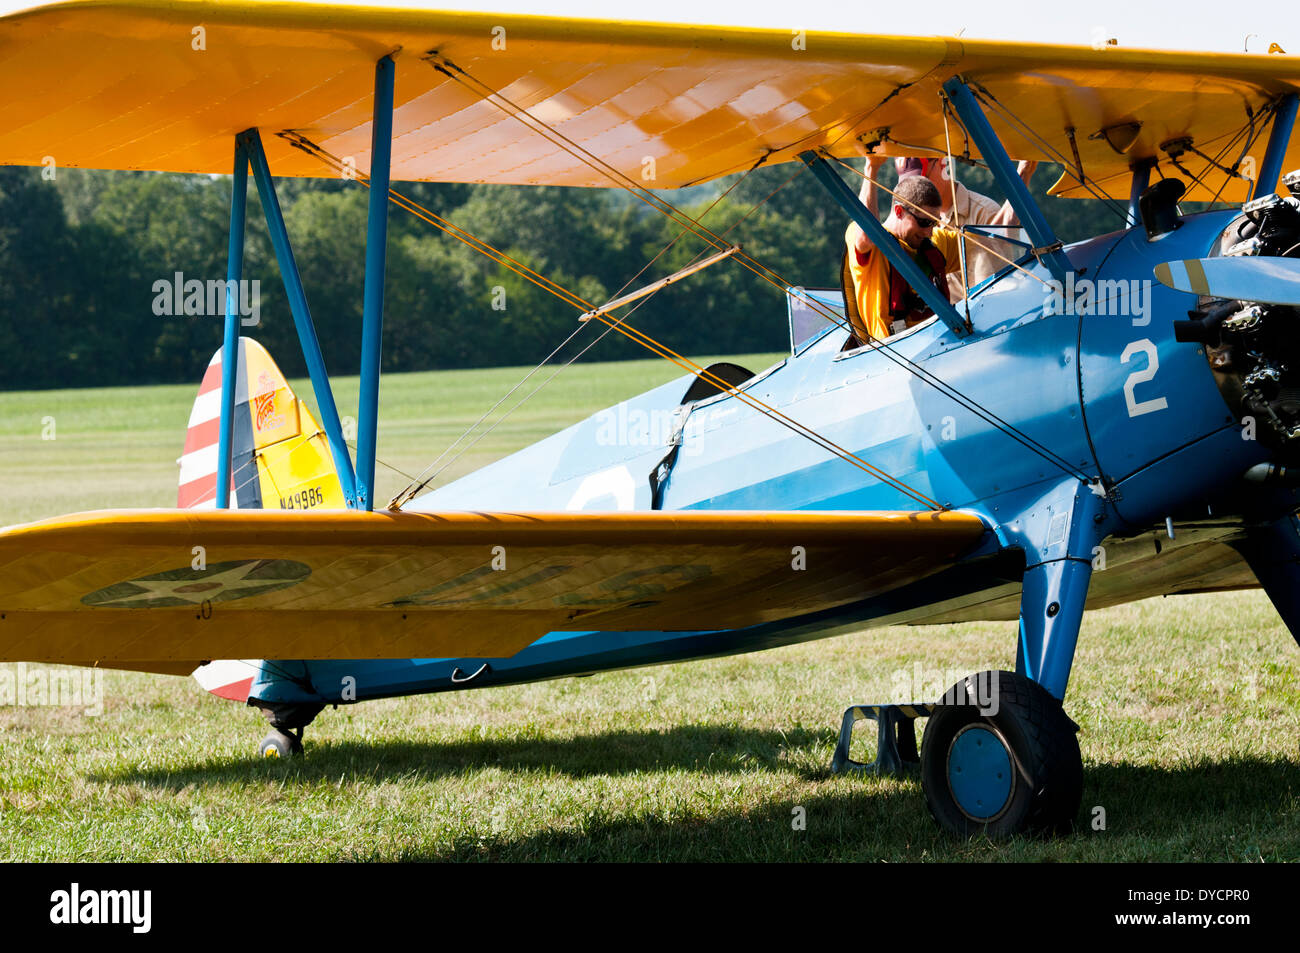 A vintage bi-plane getting ready for take off at an air show in Bealeton, Virginia - Stock Image